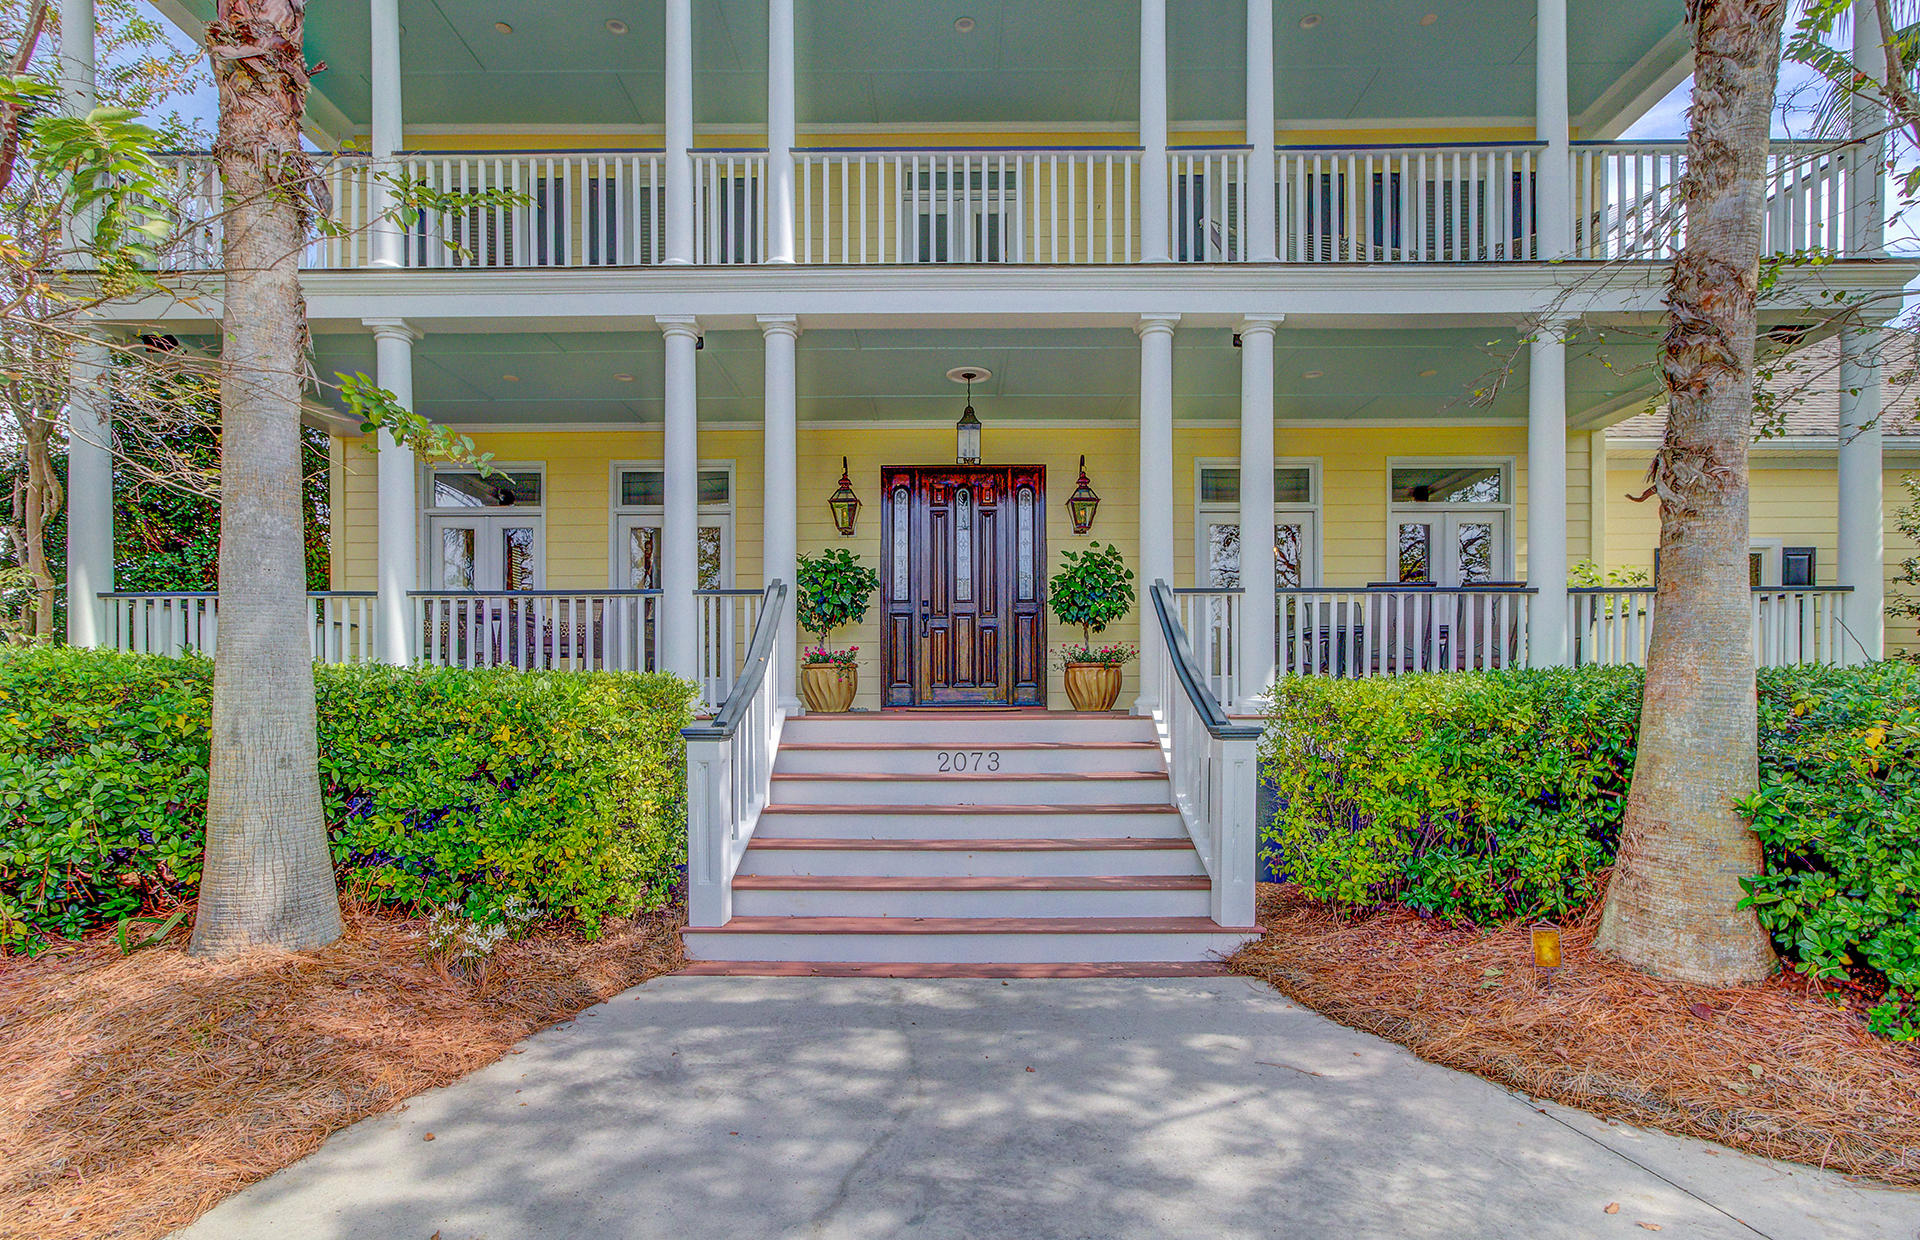 Rivertowne On The Wando Homes For Sale - 2073 Willbrook, Mount Pleasant, SC - 27